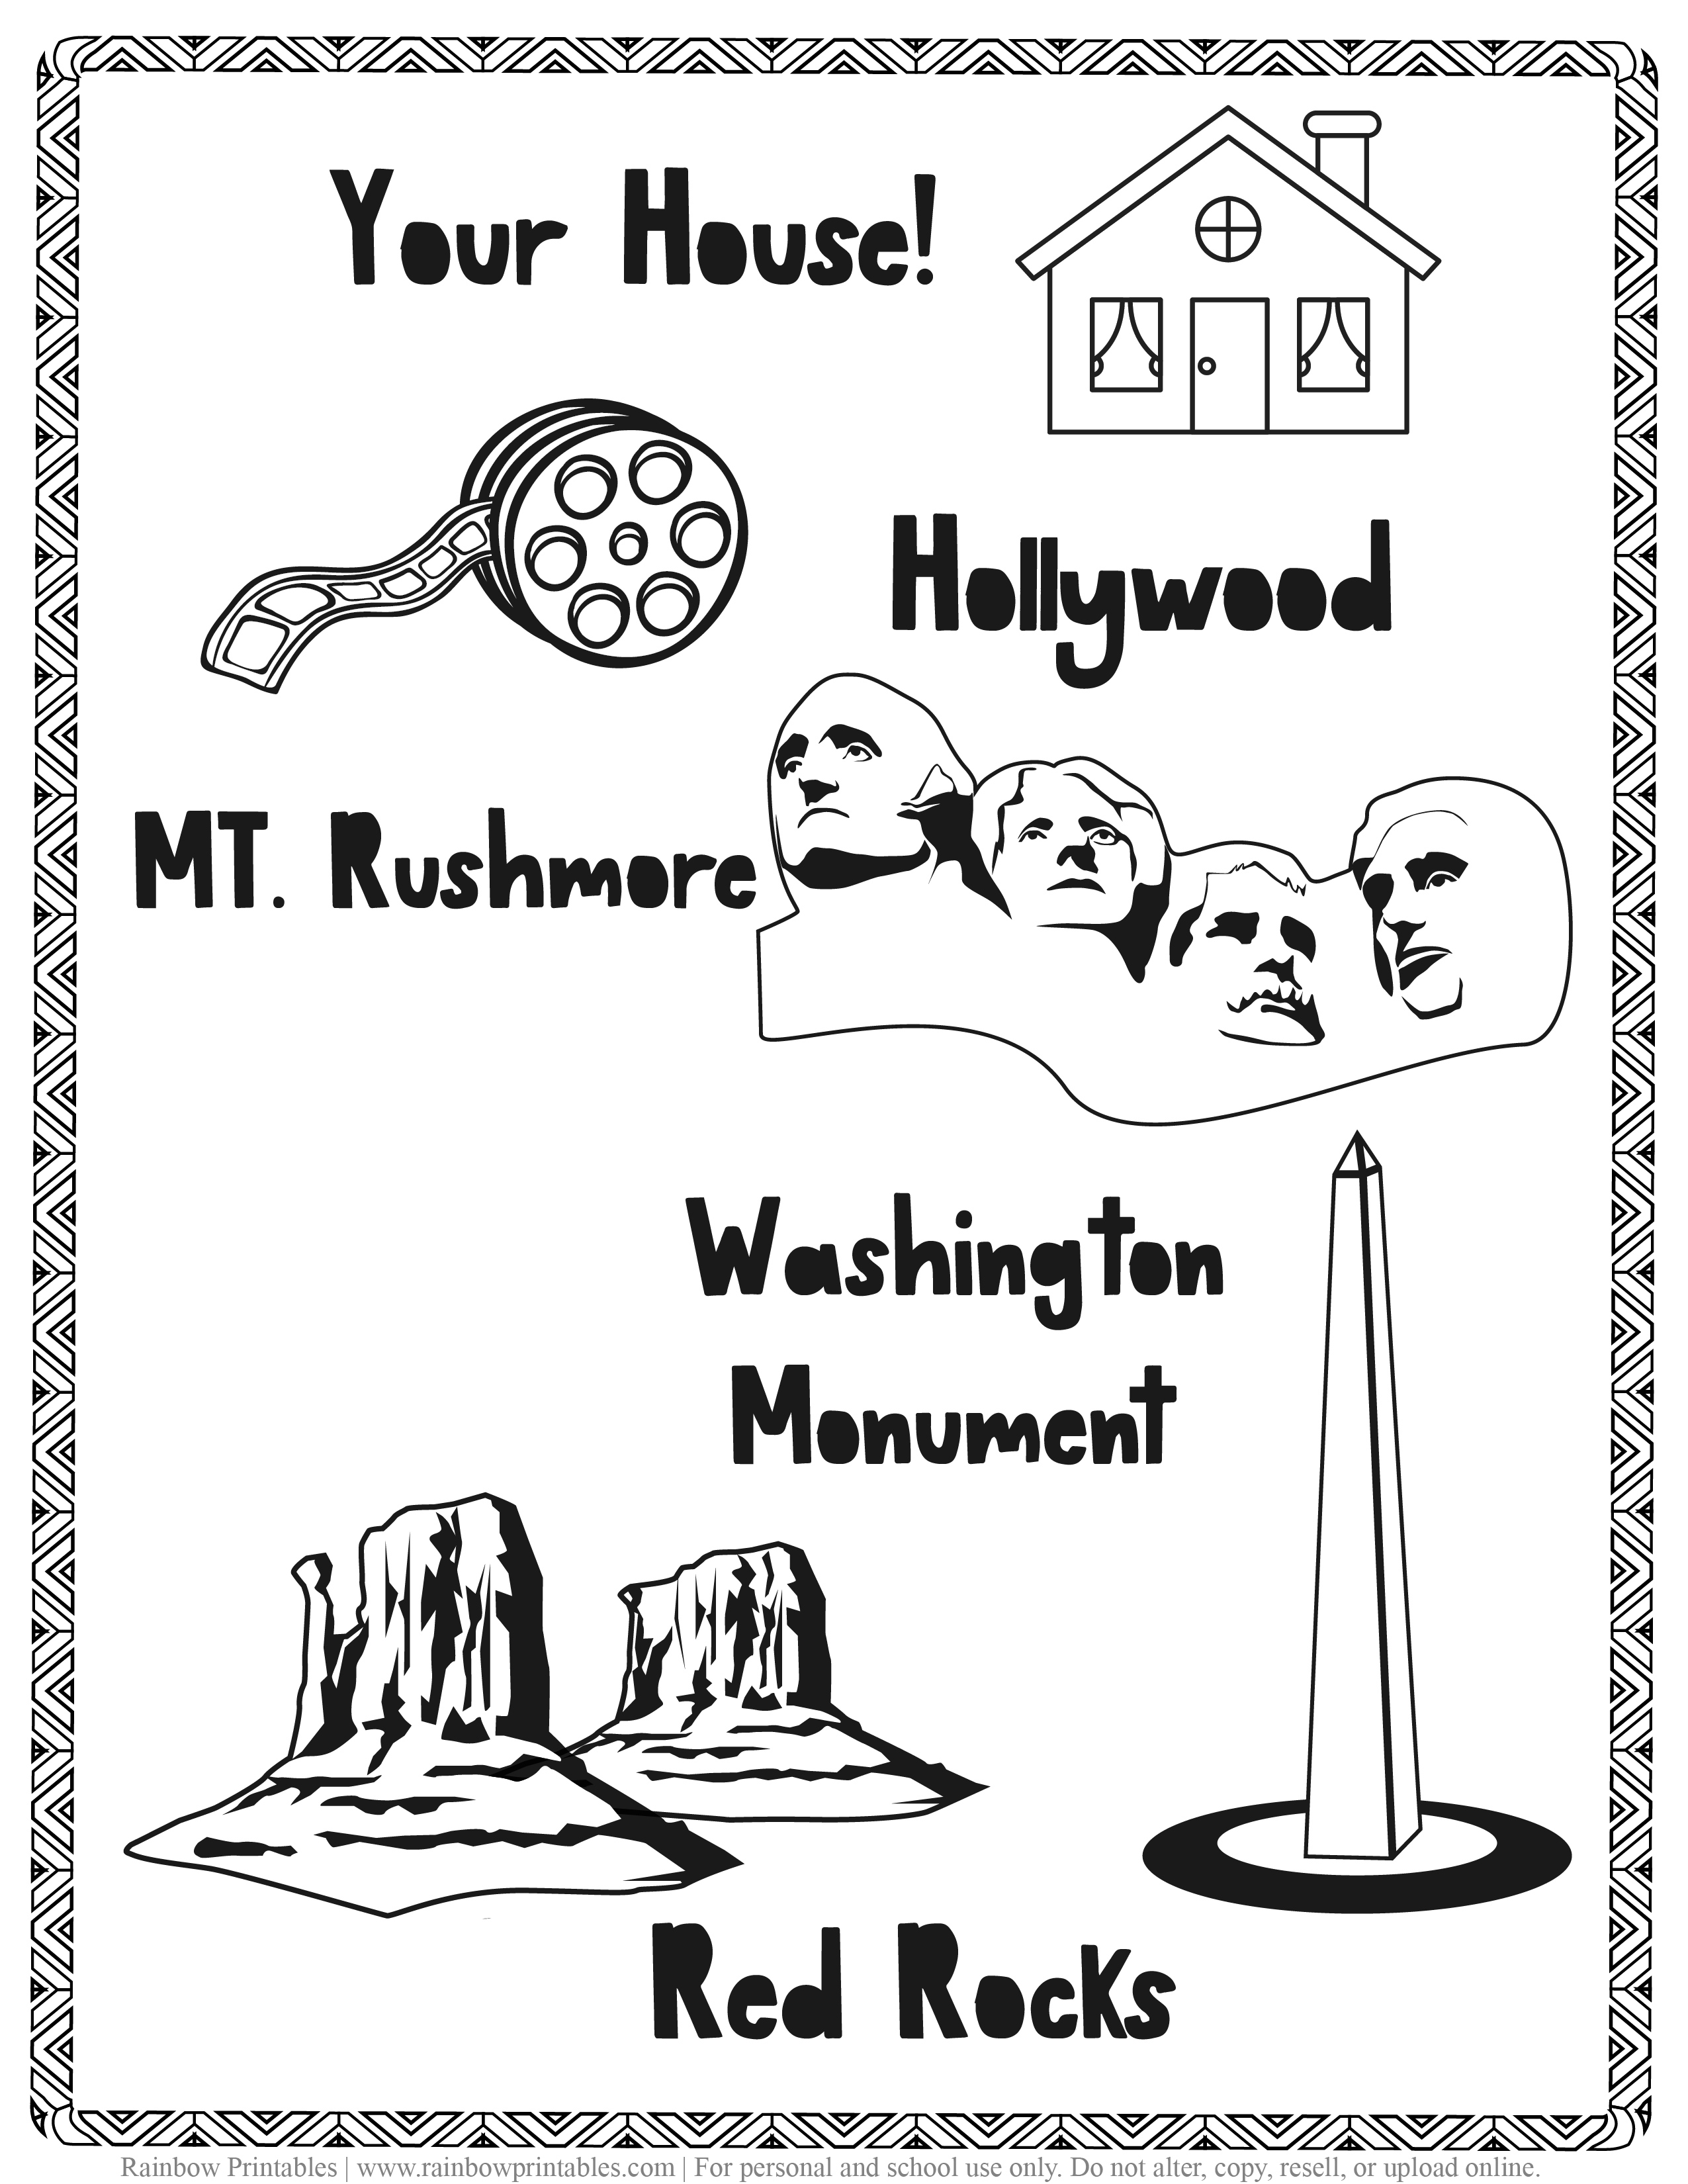 American Famous Landmarks Worksheet Geography Quiz Kids Patriotic July 4th Independence Day Printables for Children, Toddlers, America Coloring Pages, Activity (2)